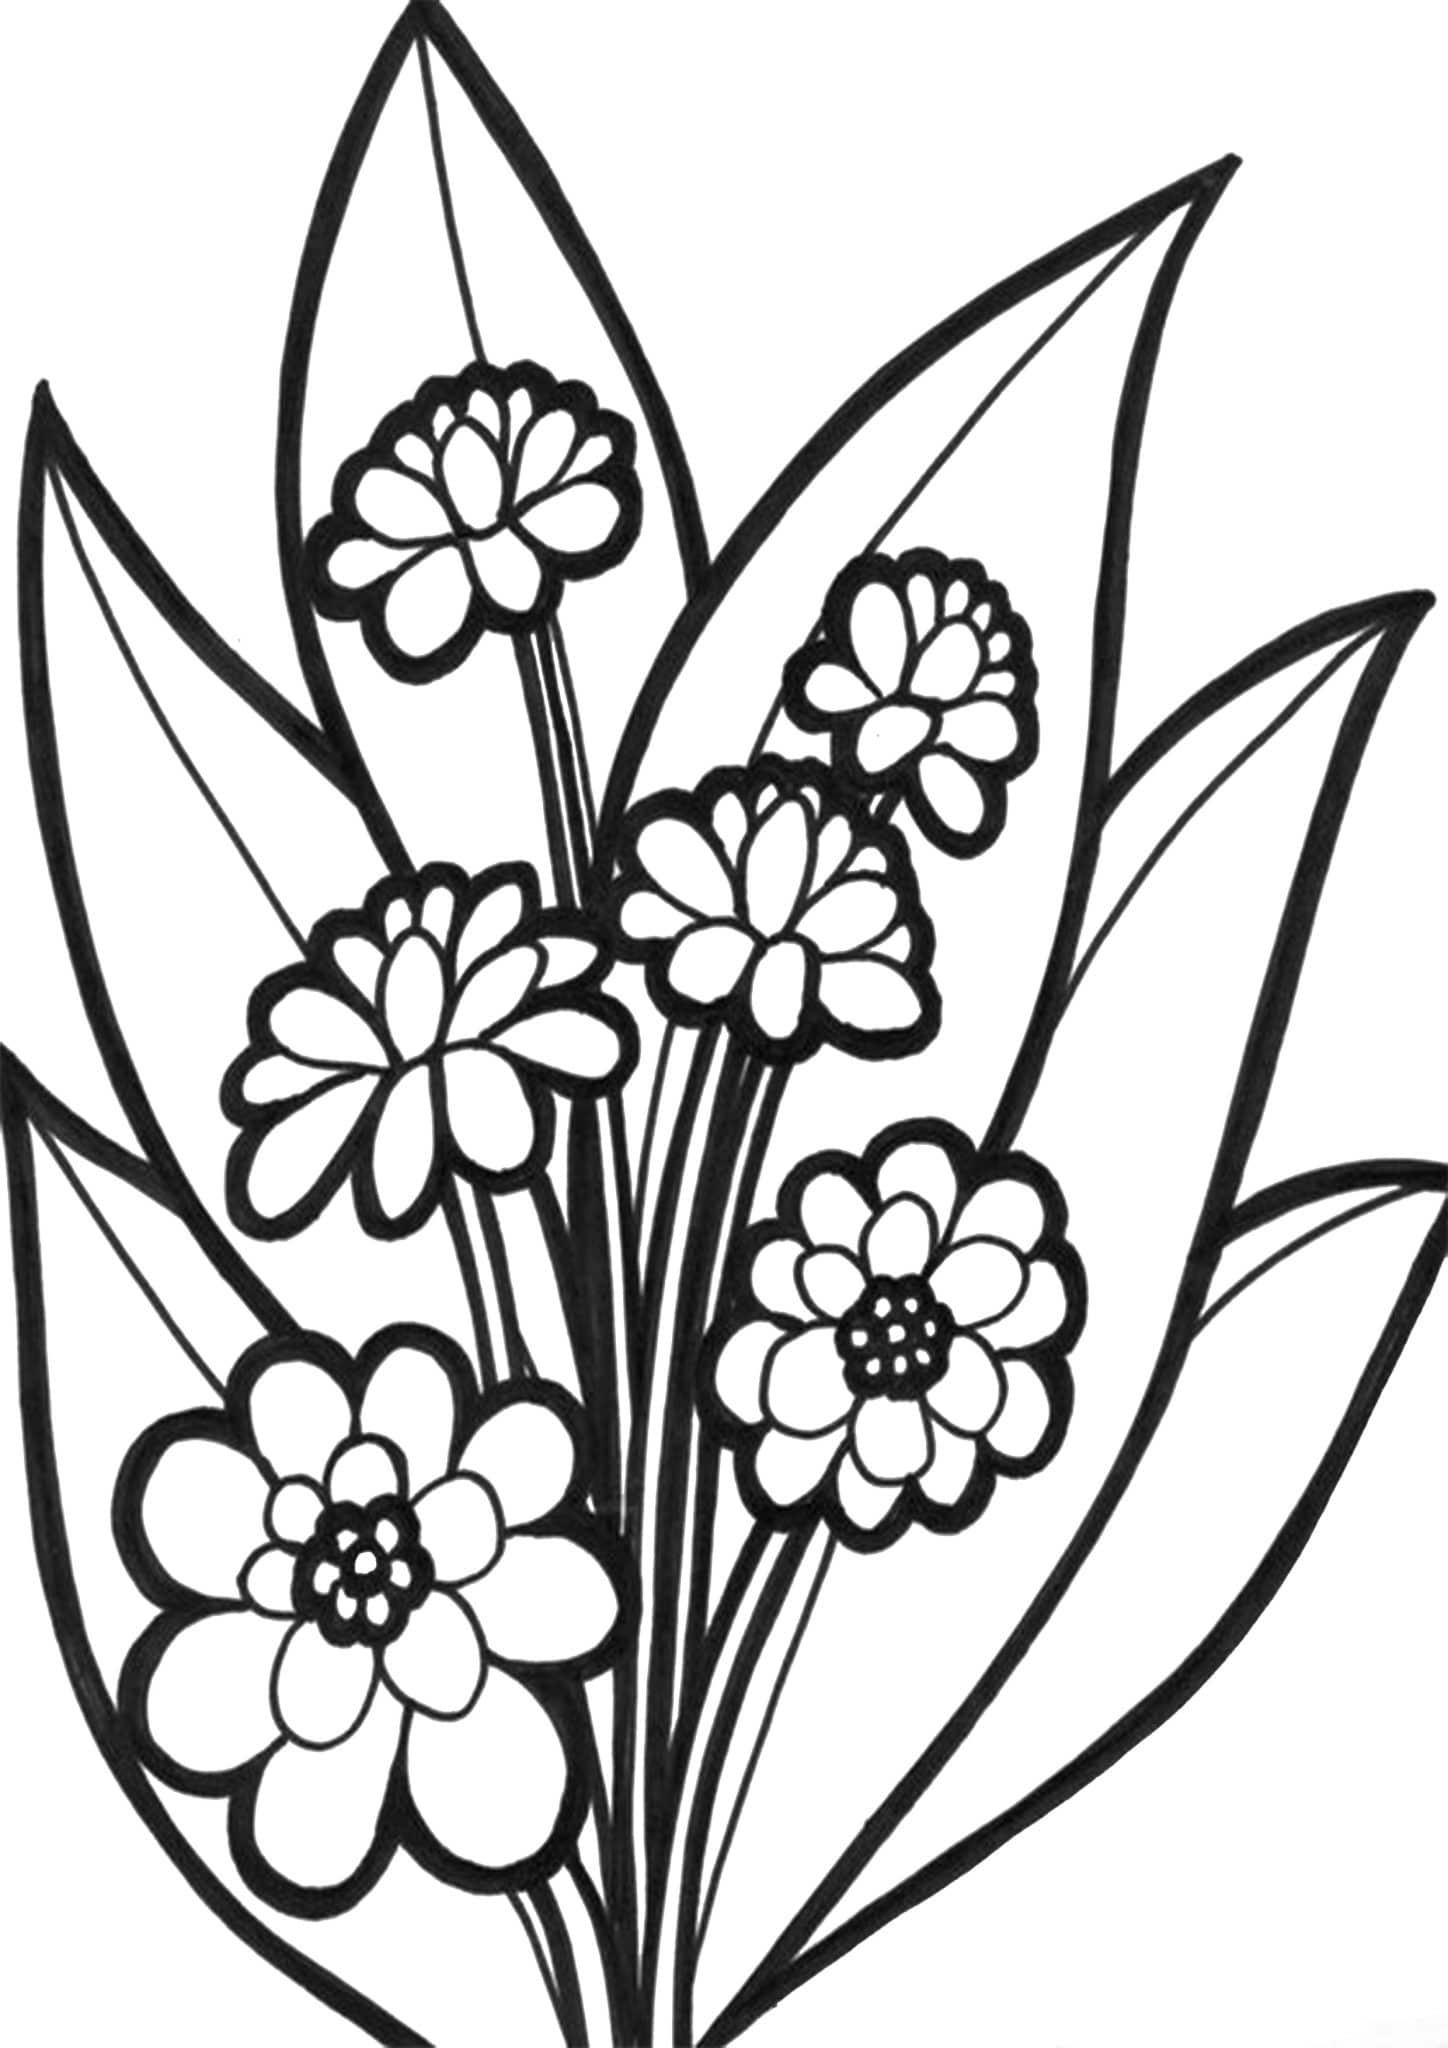 colouring page of flowers flowers coloring pages 10 free fun printable coloring of page colouring flowers